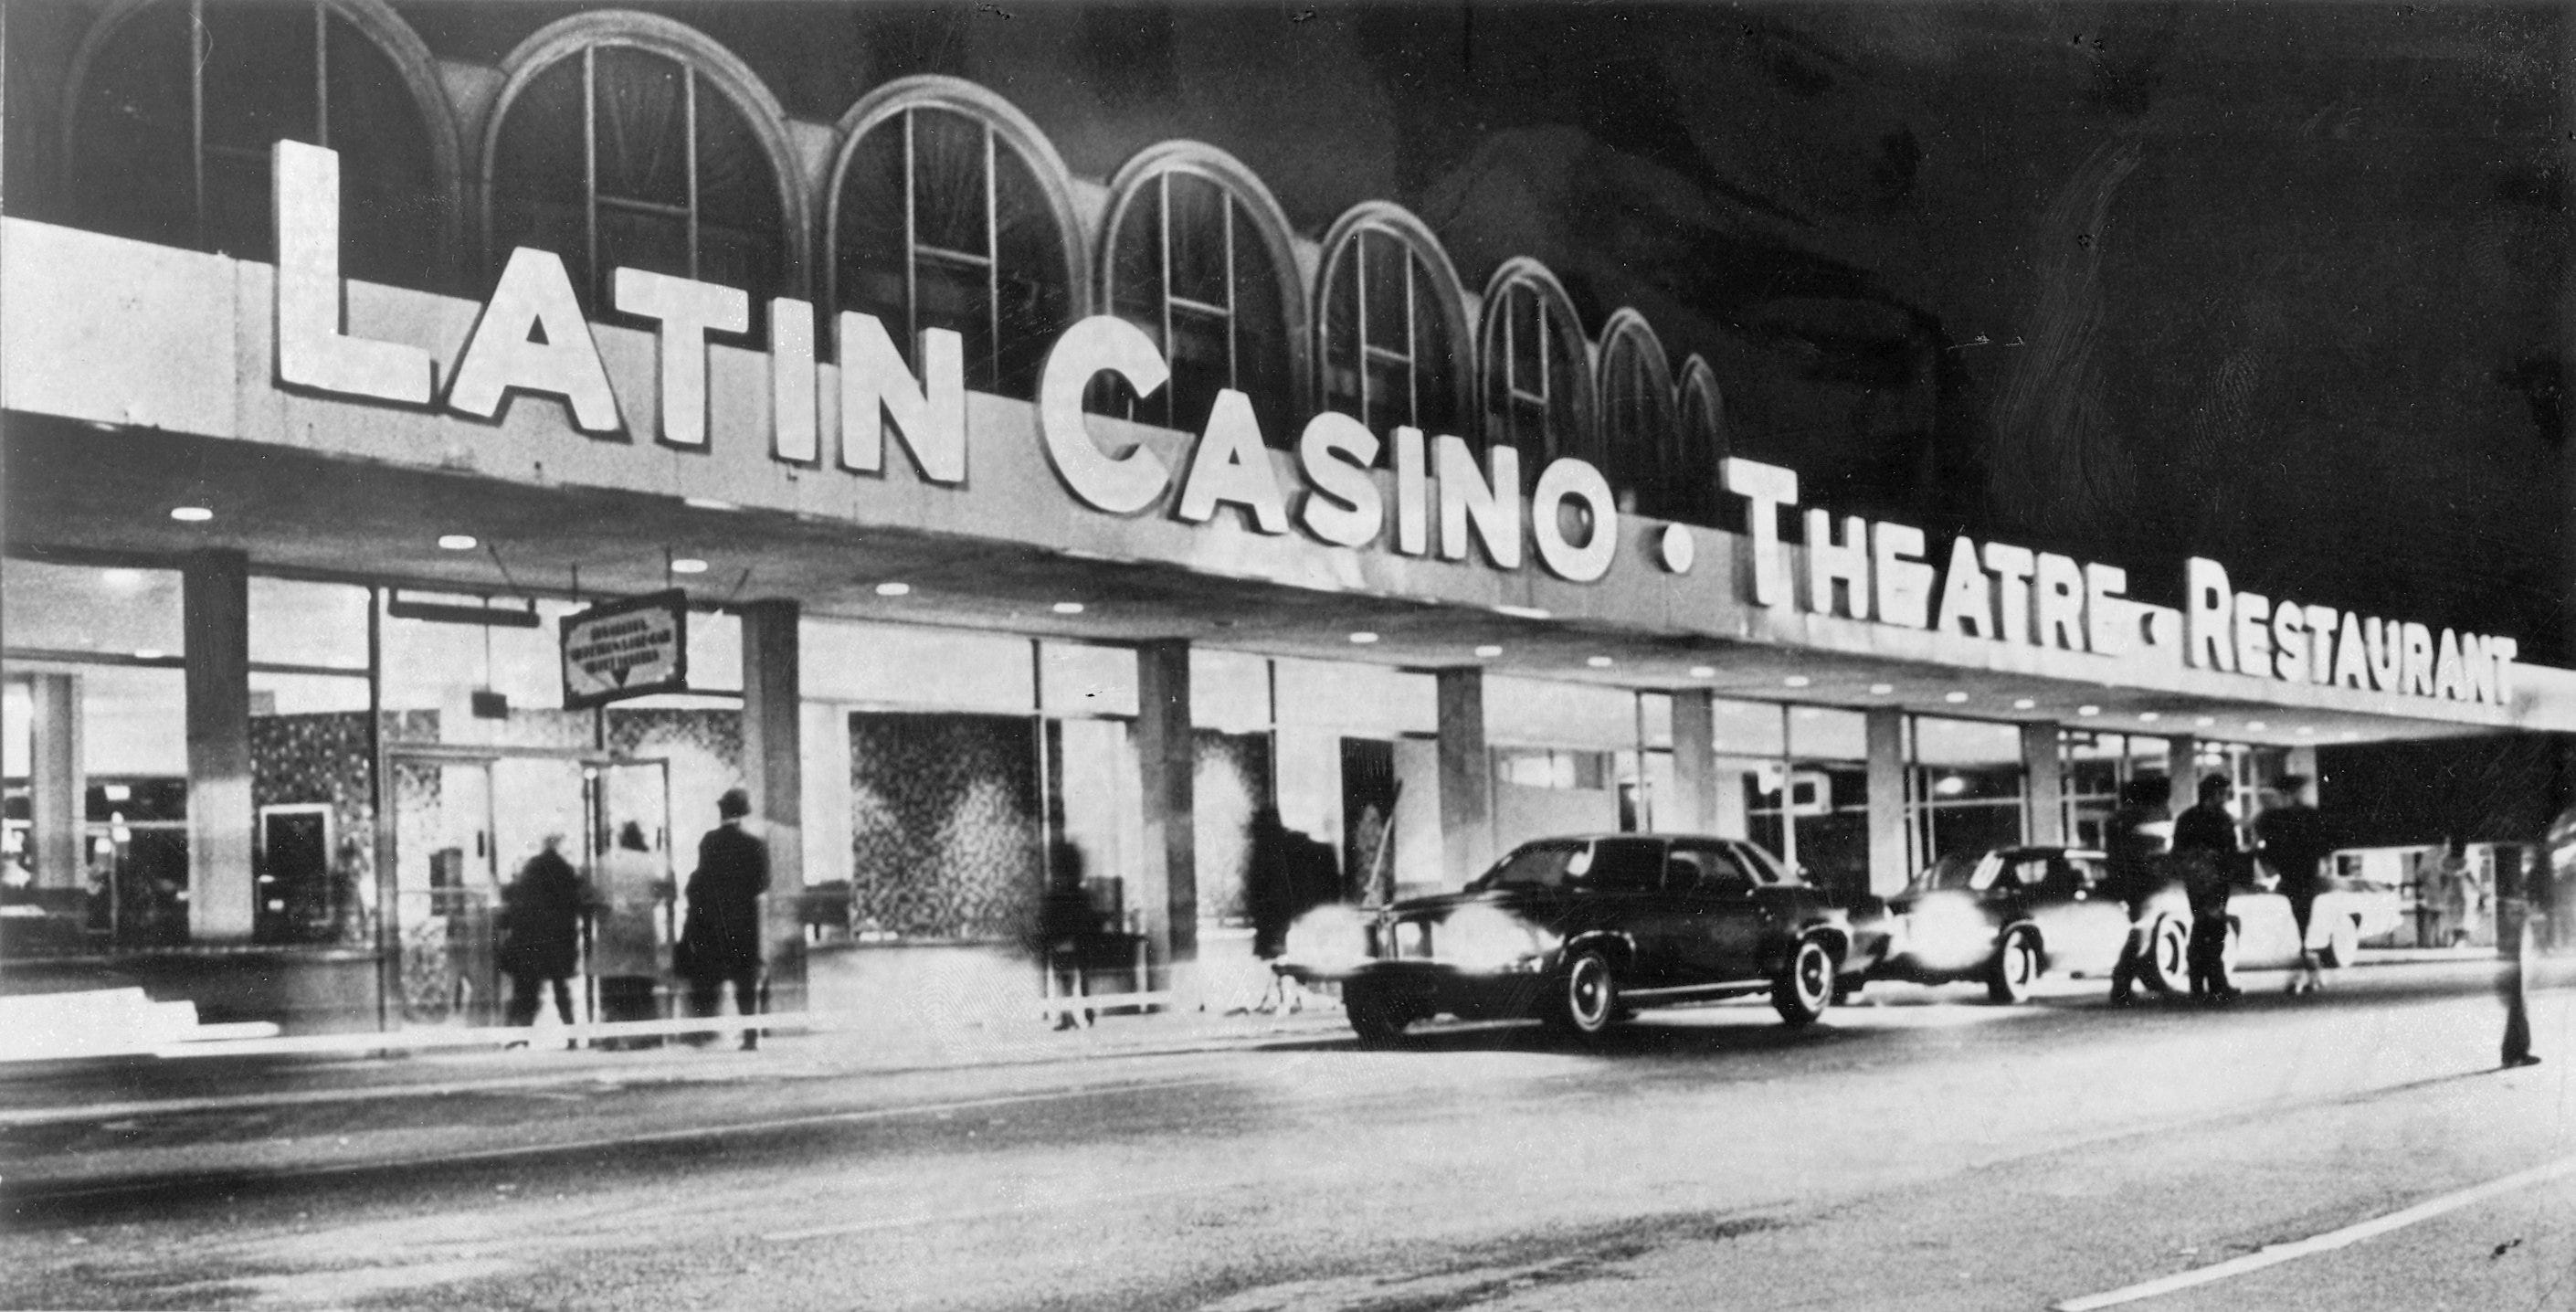 Everyone from Engelbert Humperdinck to The Supremes played the Latin Casino in Cherry Hill.  Many famous acts took the stage including Liberace.